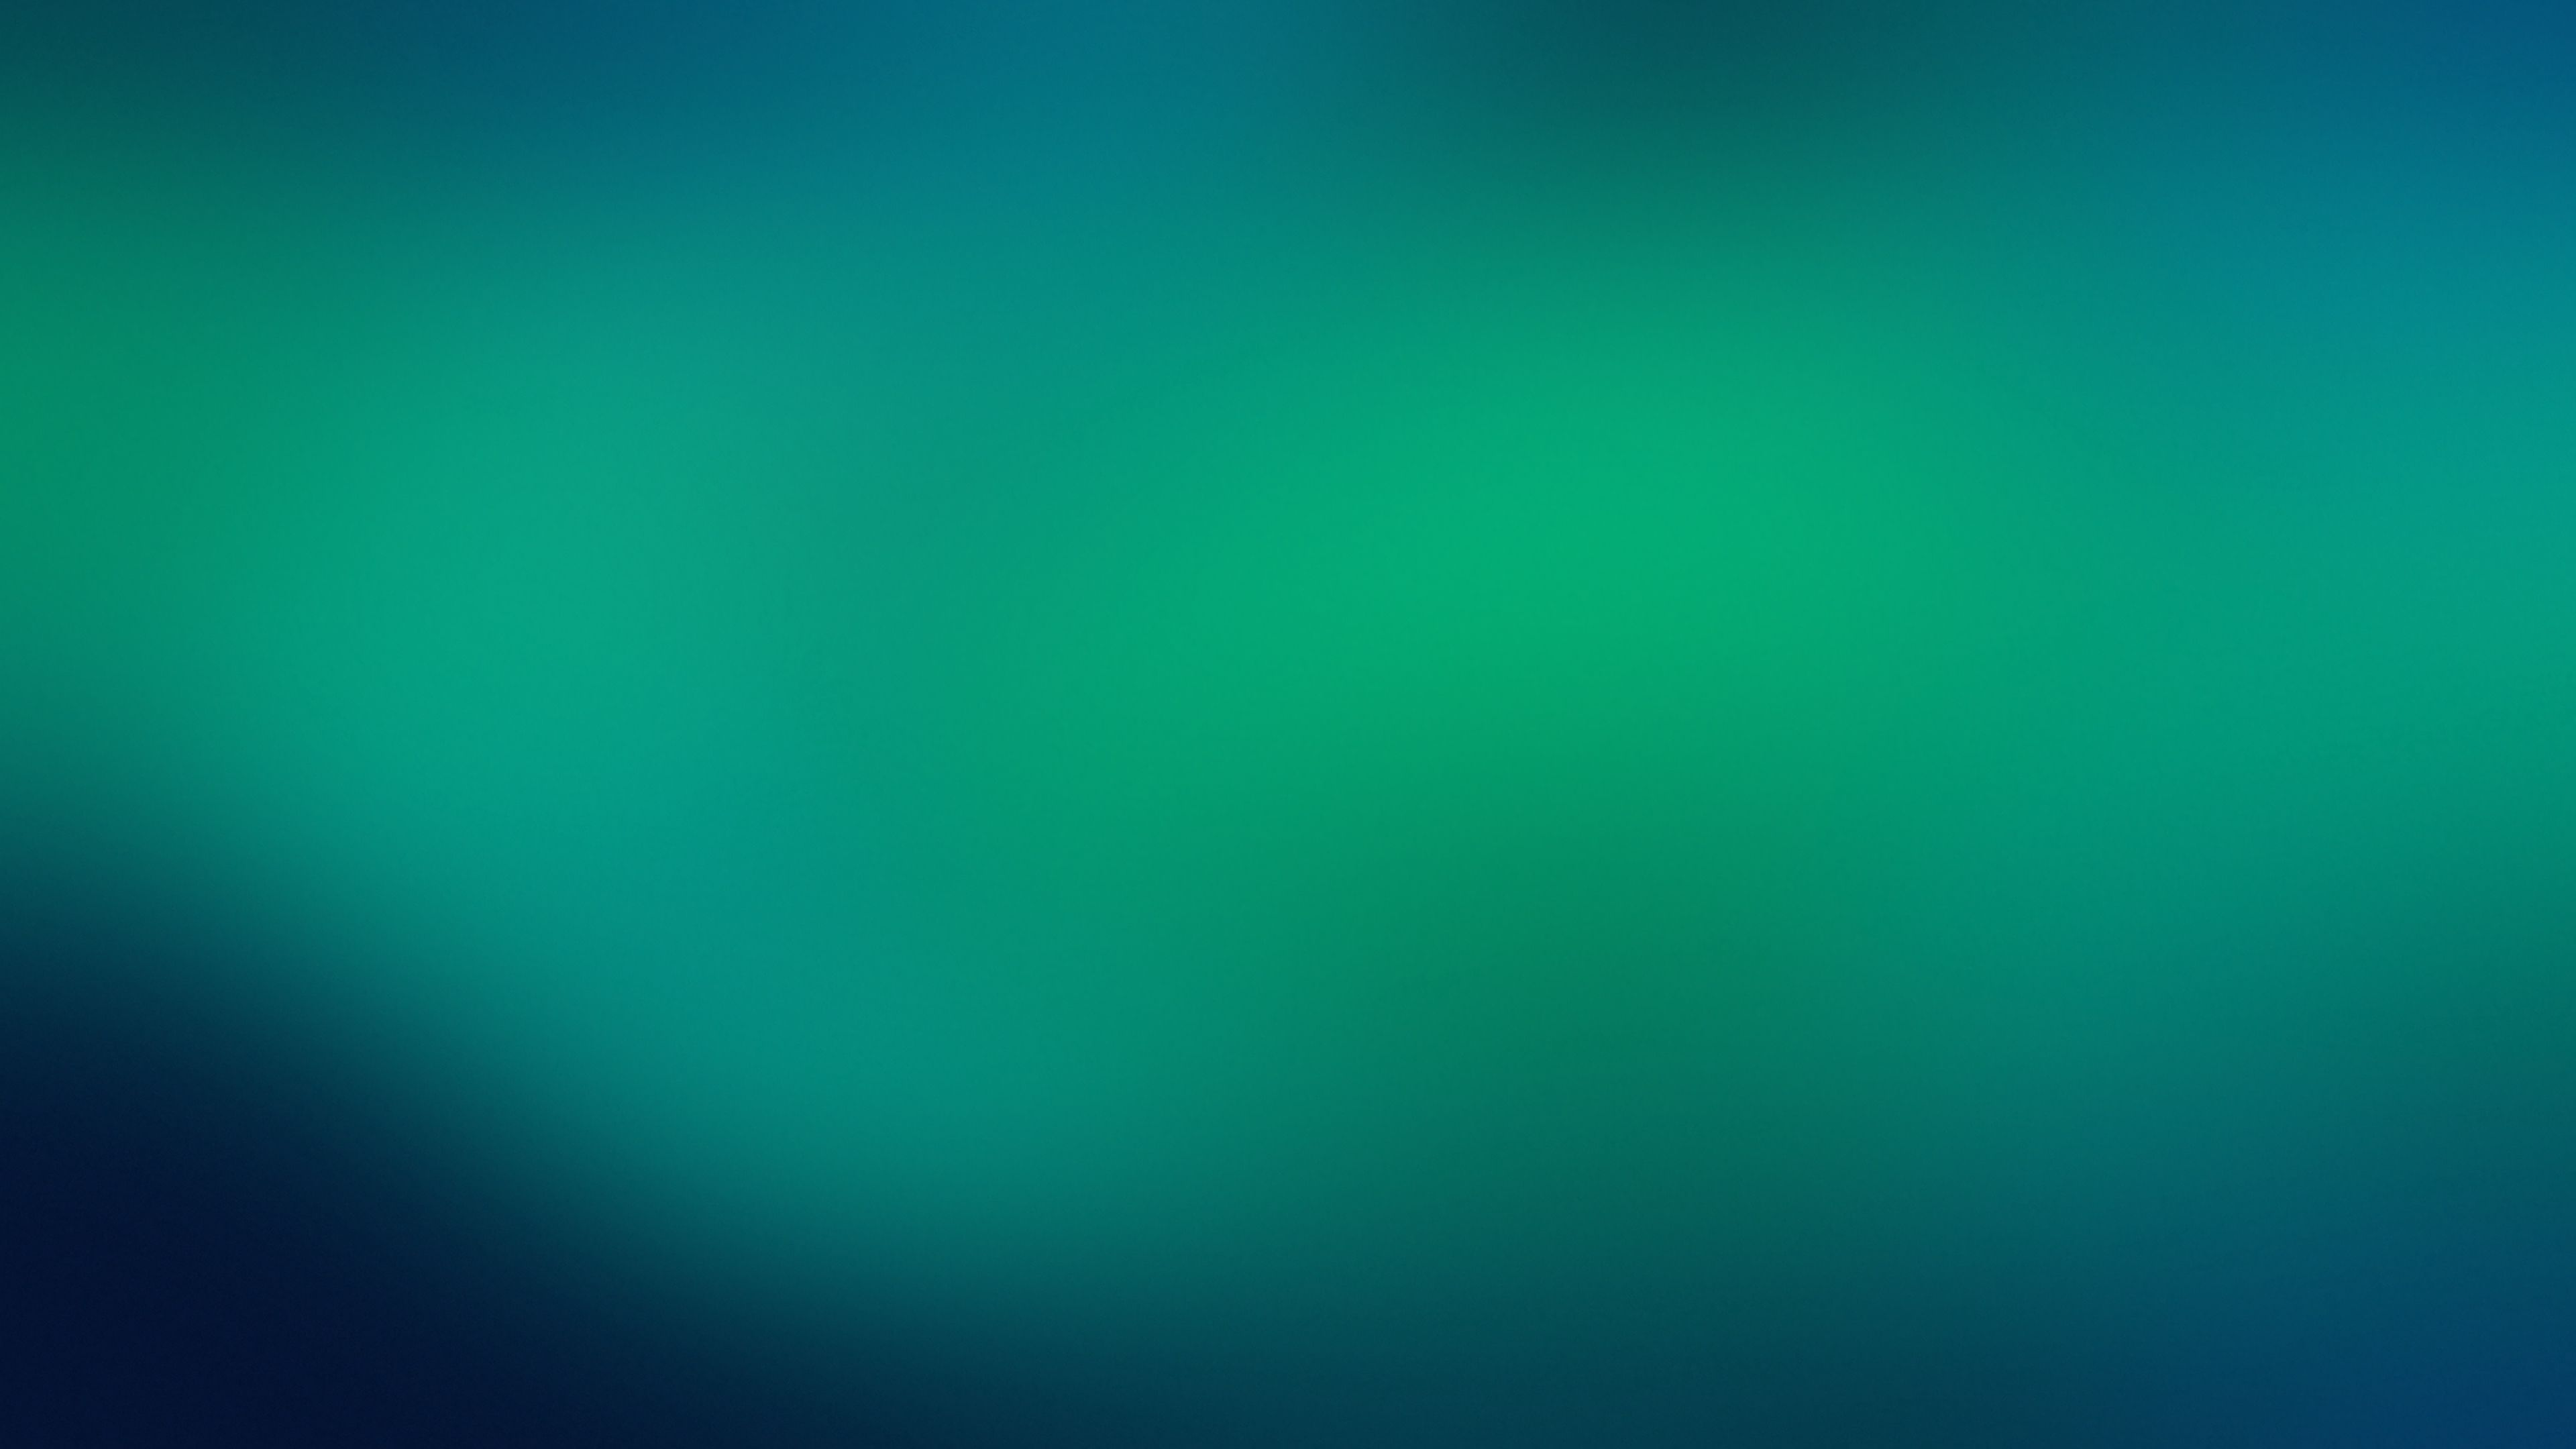 126875 download wallpaper Background, Texture, Textures, Gradient screensavers and pictures for free